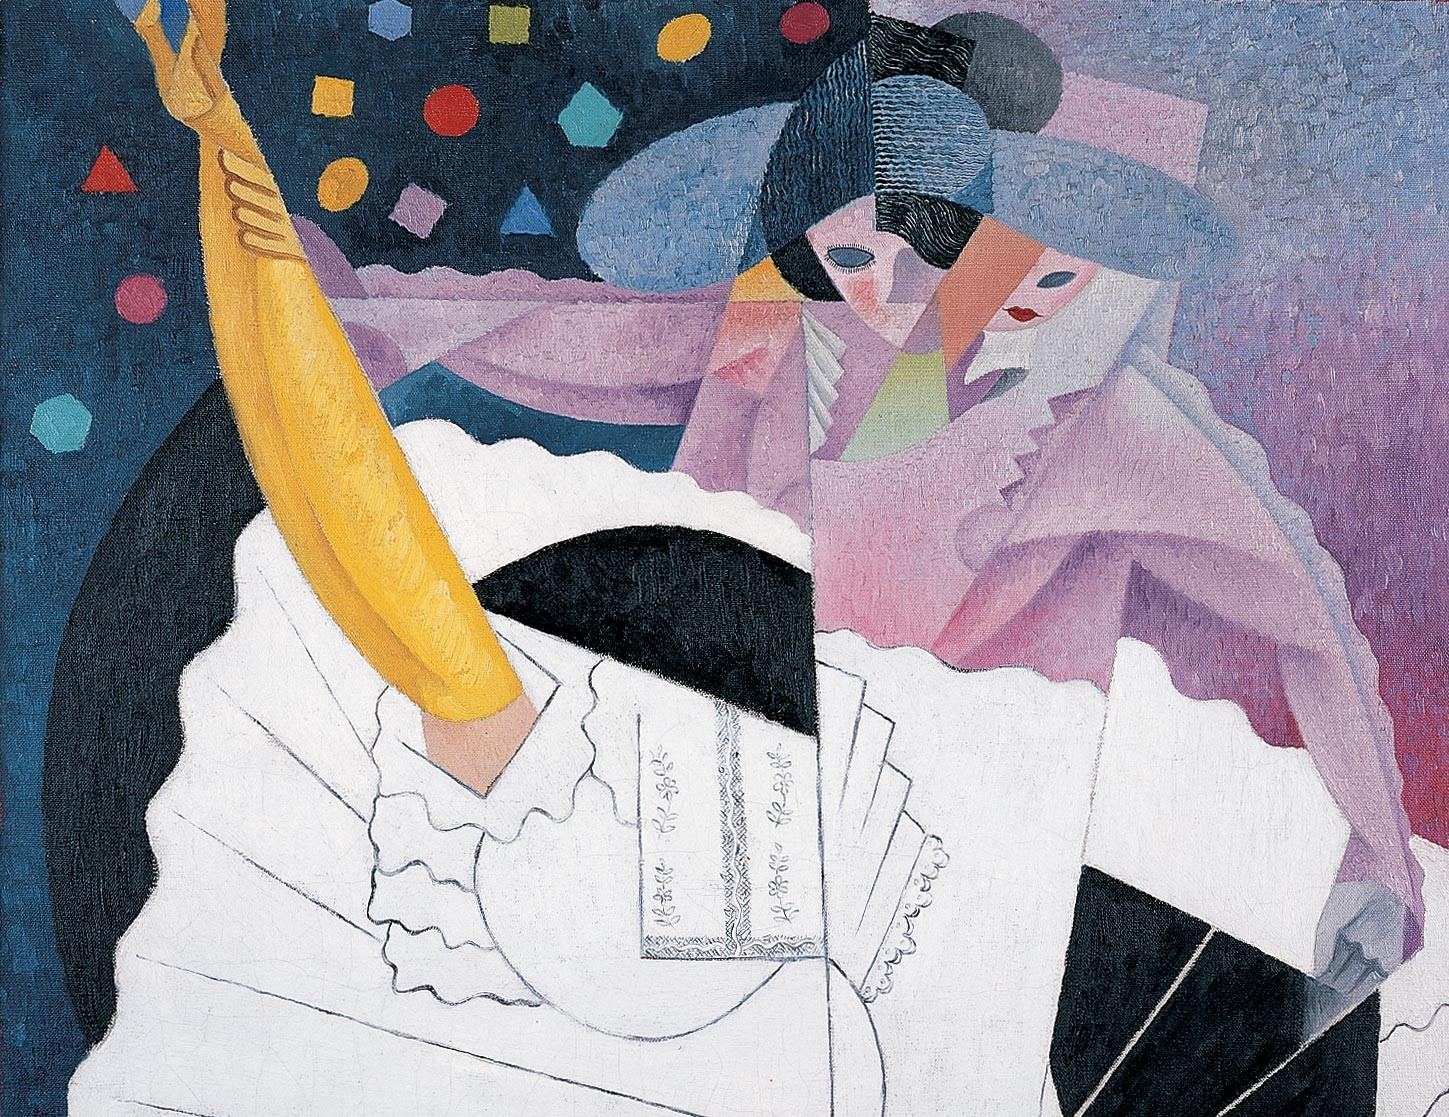 Gino Severini, Danseuse No.5  (Dancer No. 5) (1915-16)